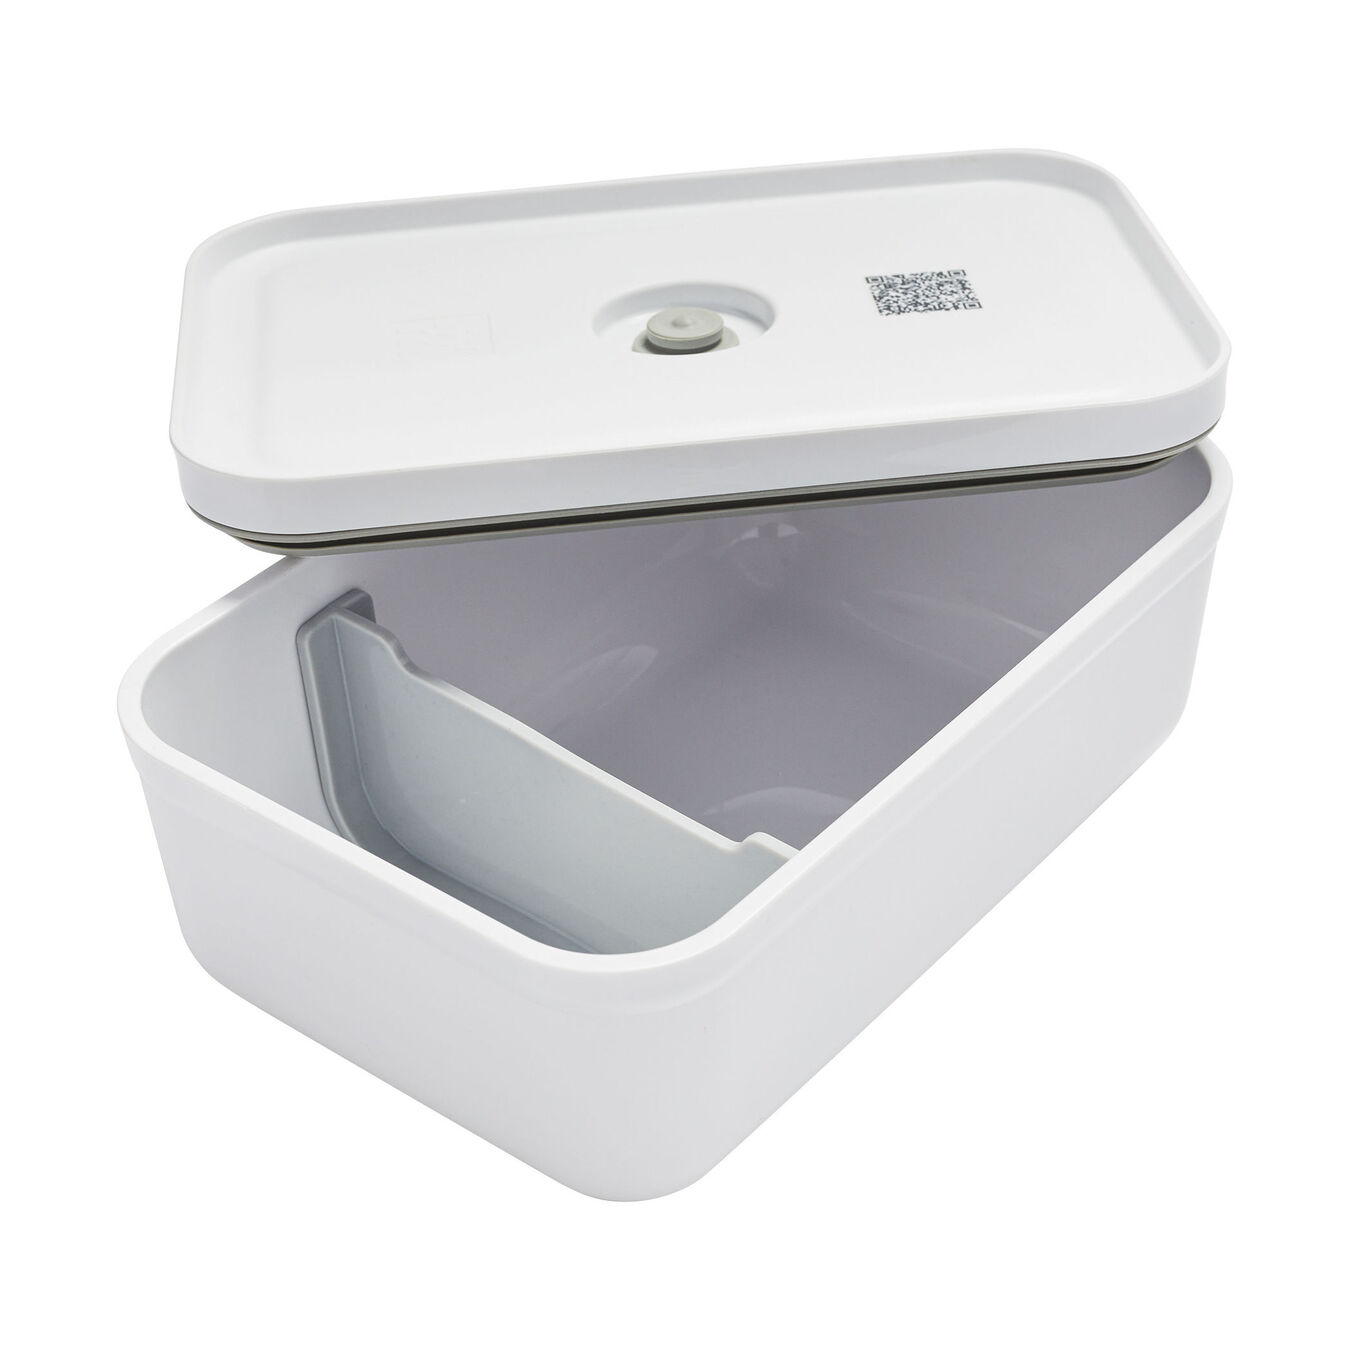 large Vacuum lunch box, plastic, white,,large 4